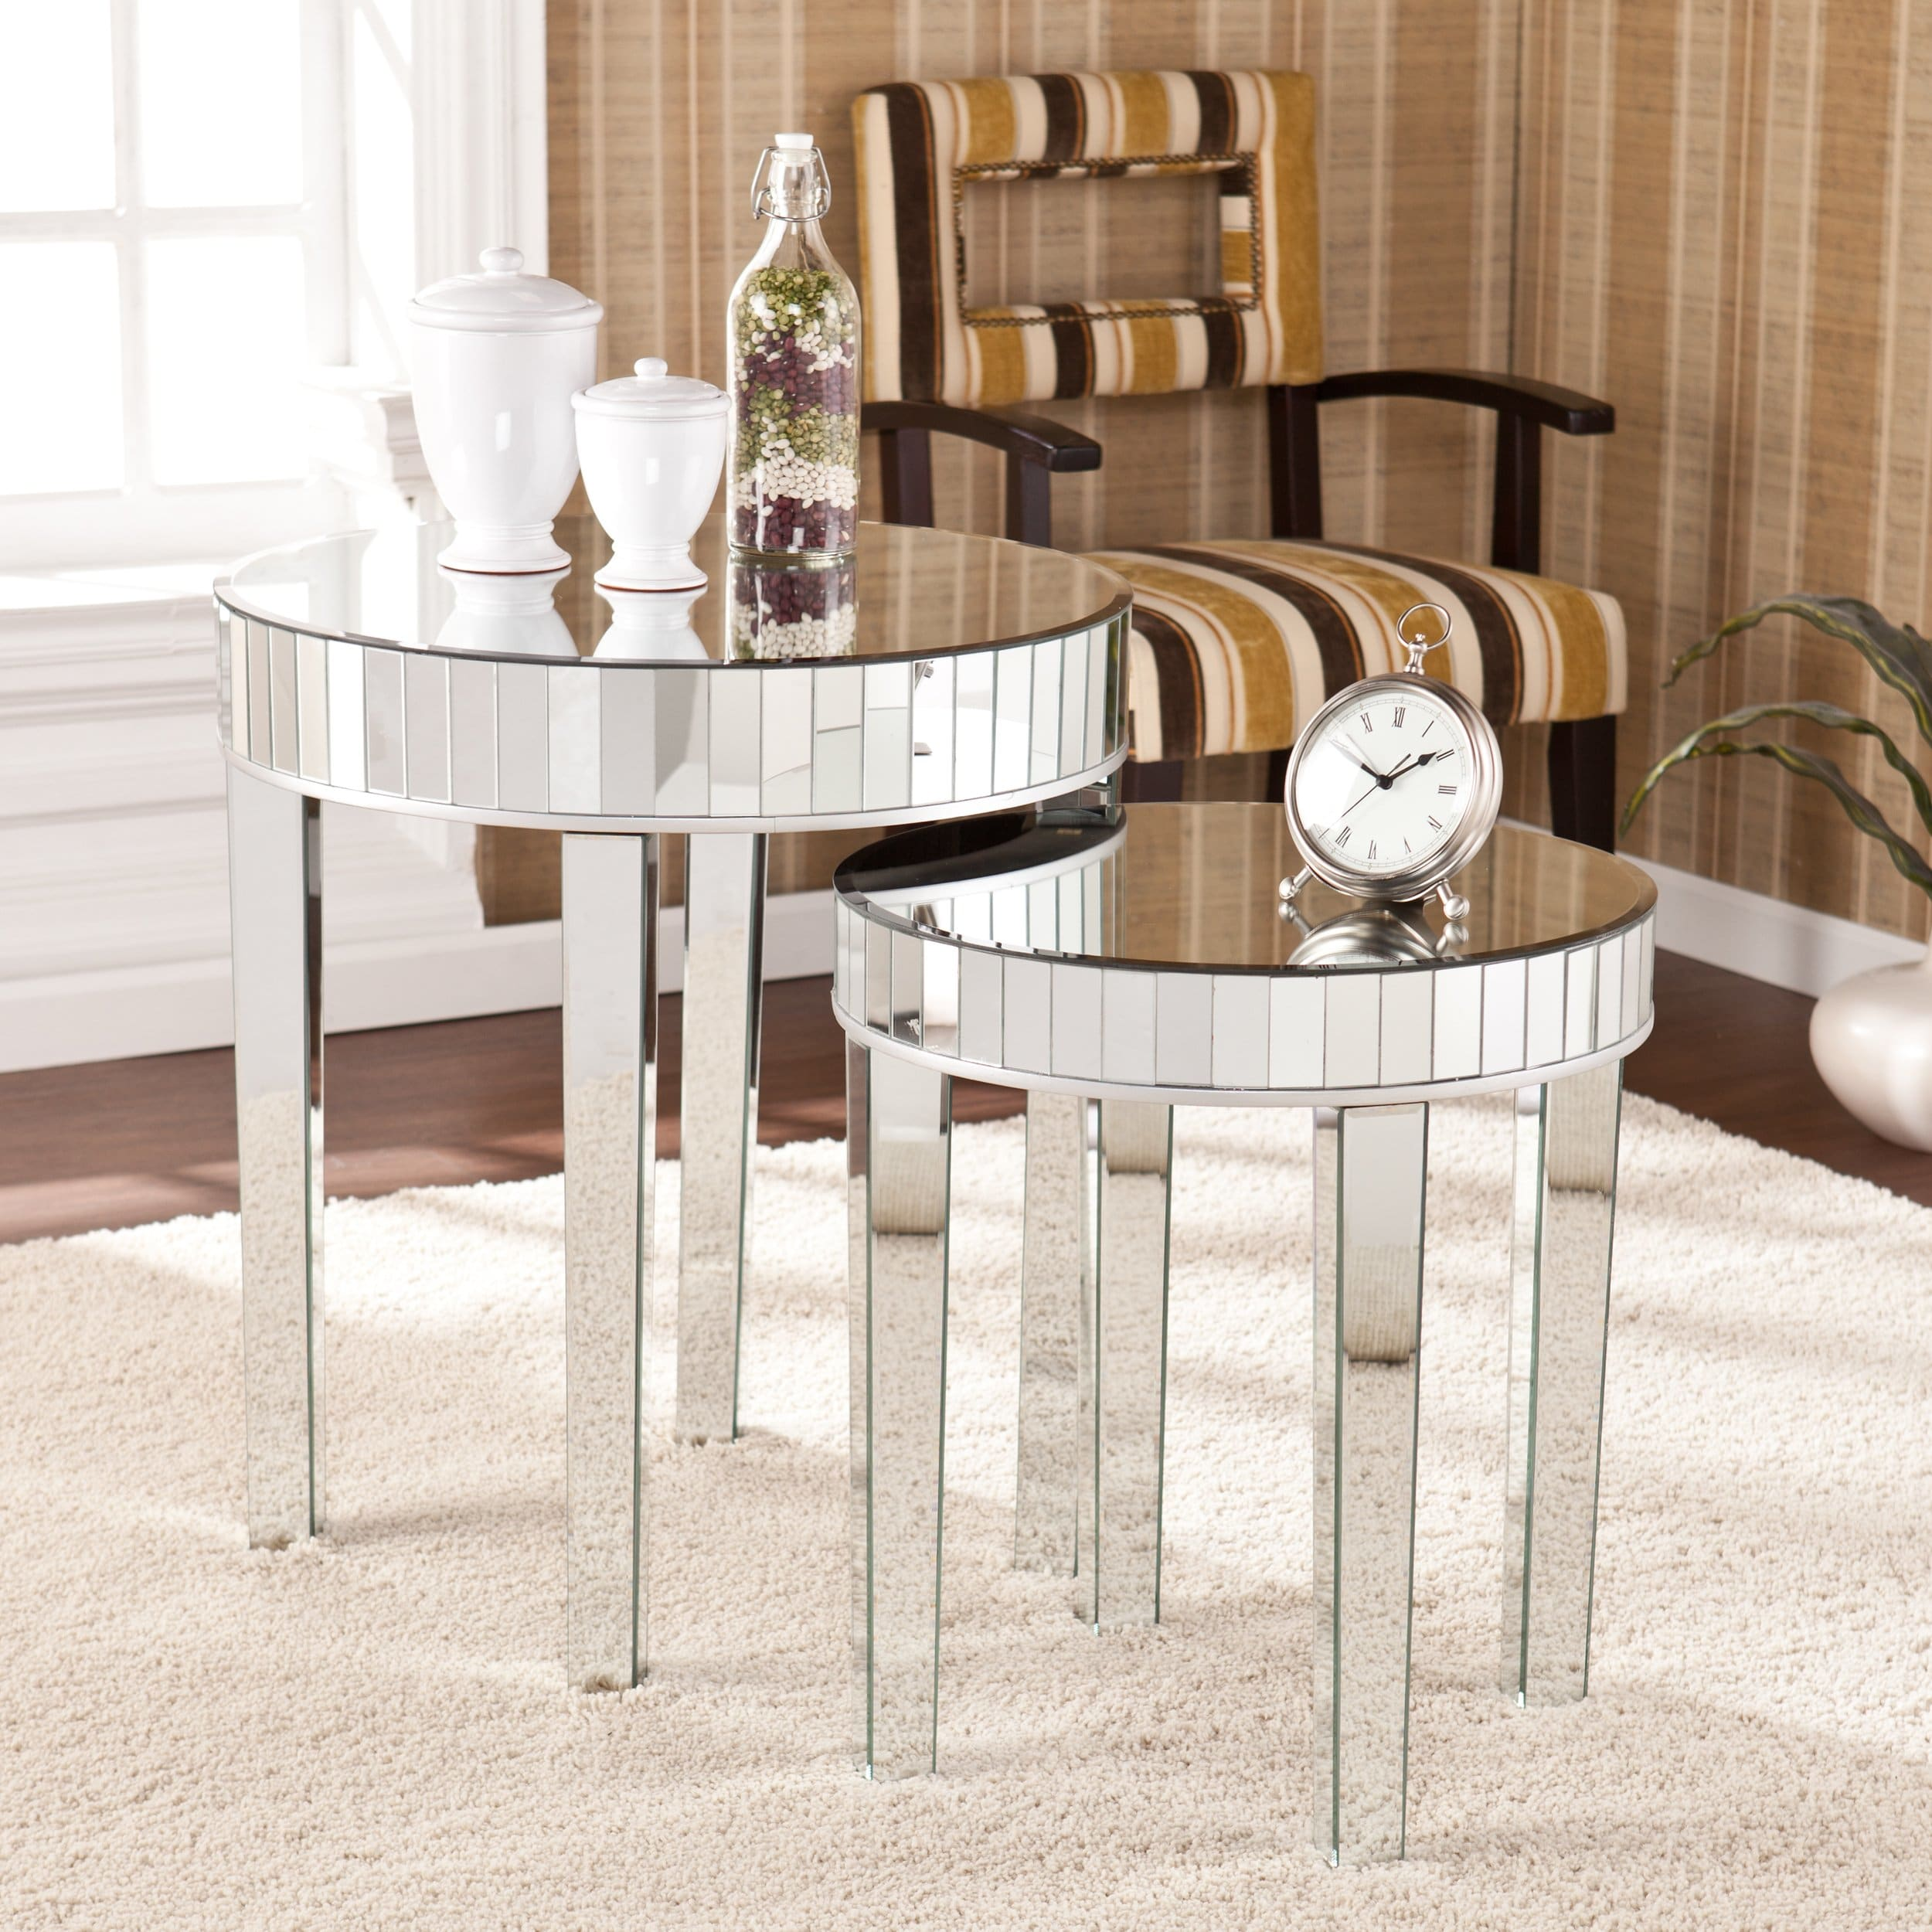 harper blvd tifton round mirrored nesting accent table set upton home christmas runner pattern pottery barn swivel chair rust colored tablecloth white corner rose gold console